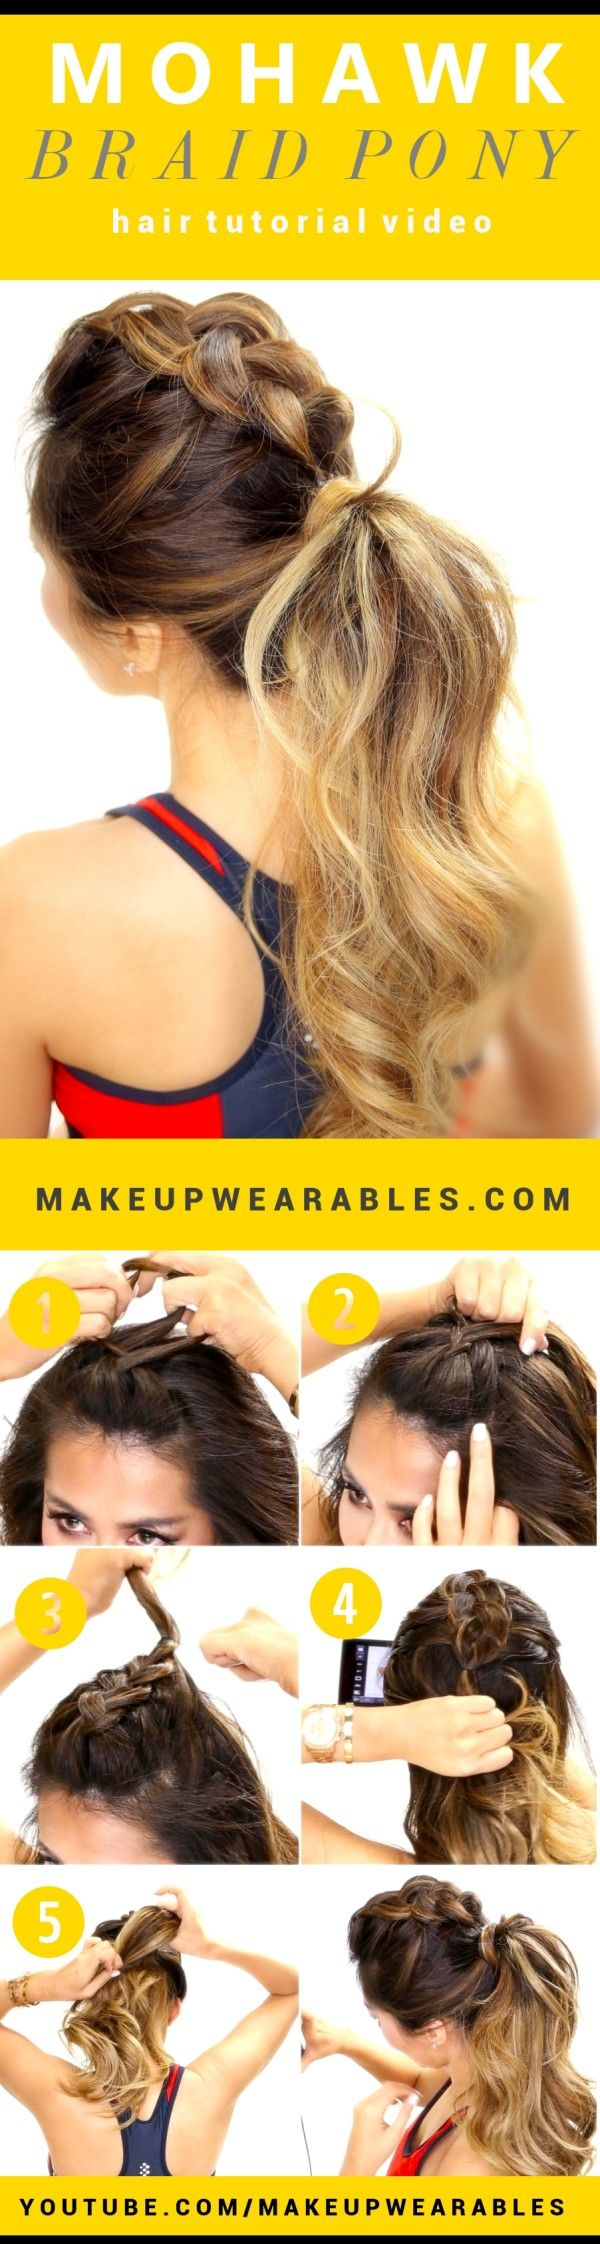 15 Spectacular DIY Hairstyle Ideas For a Busy Morning Made For Less Than 5 Minutes: